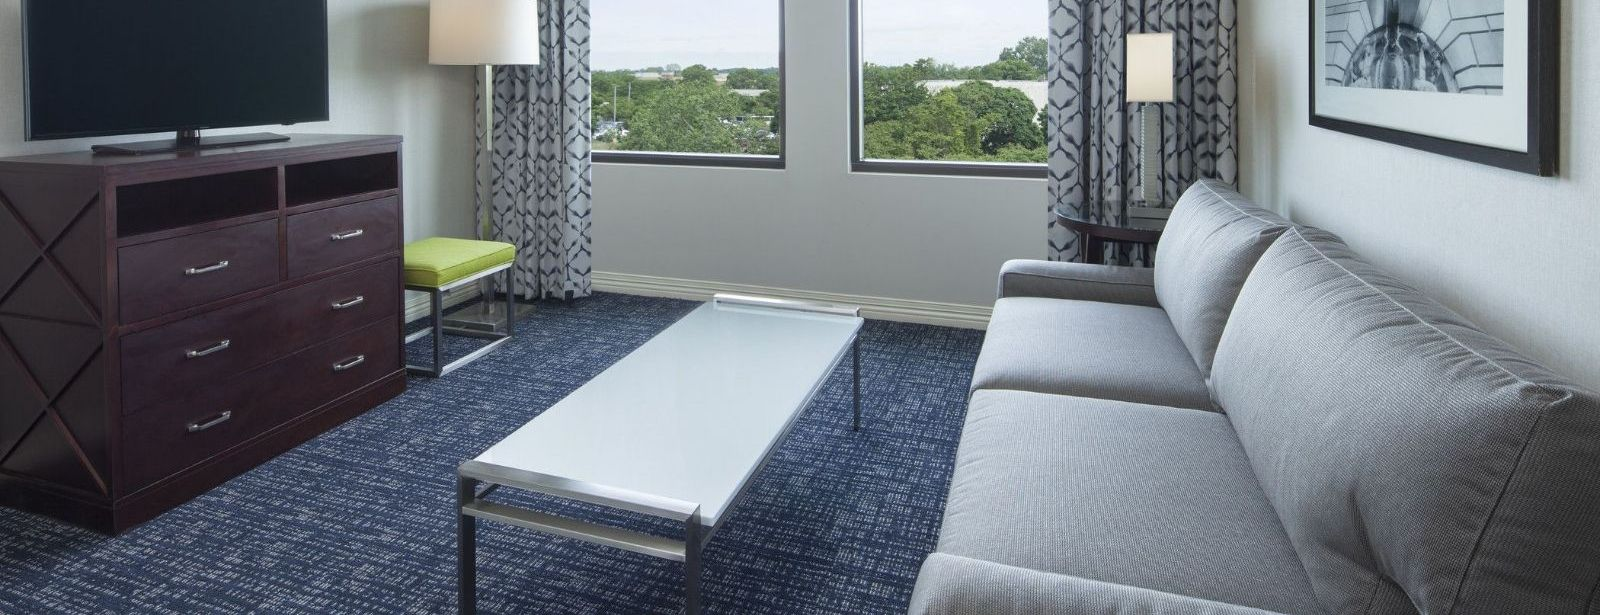 Philadelphia Airport Accommodations - Two Bedroom Suite